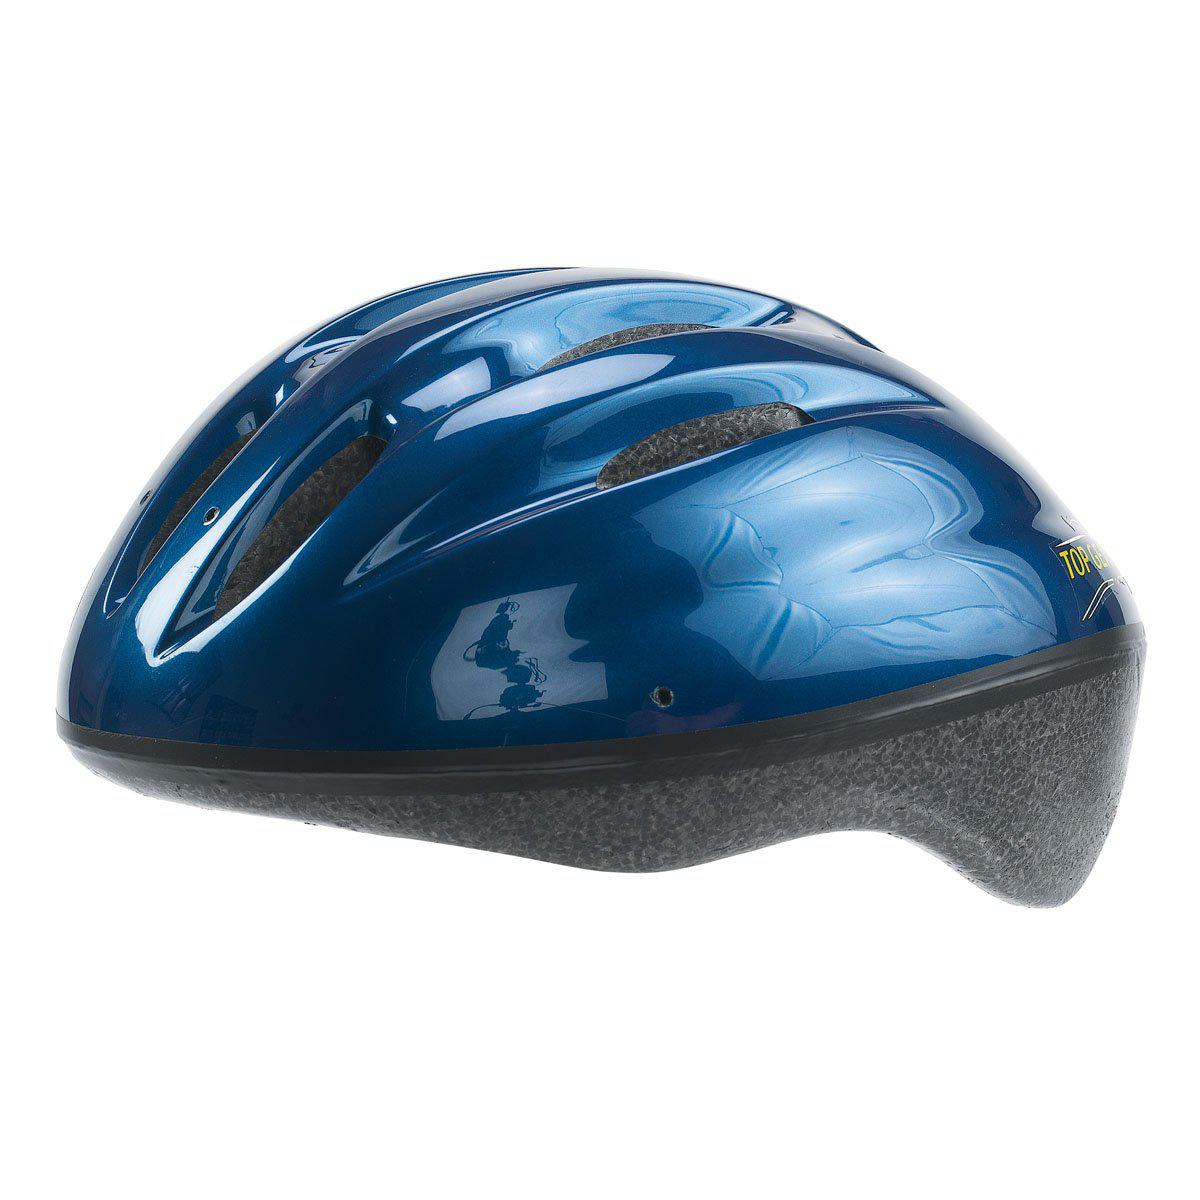 Child-Size Trike Helmet